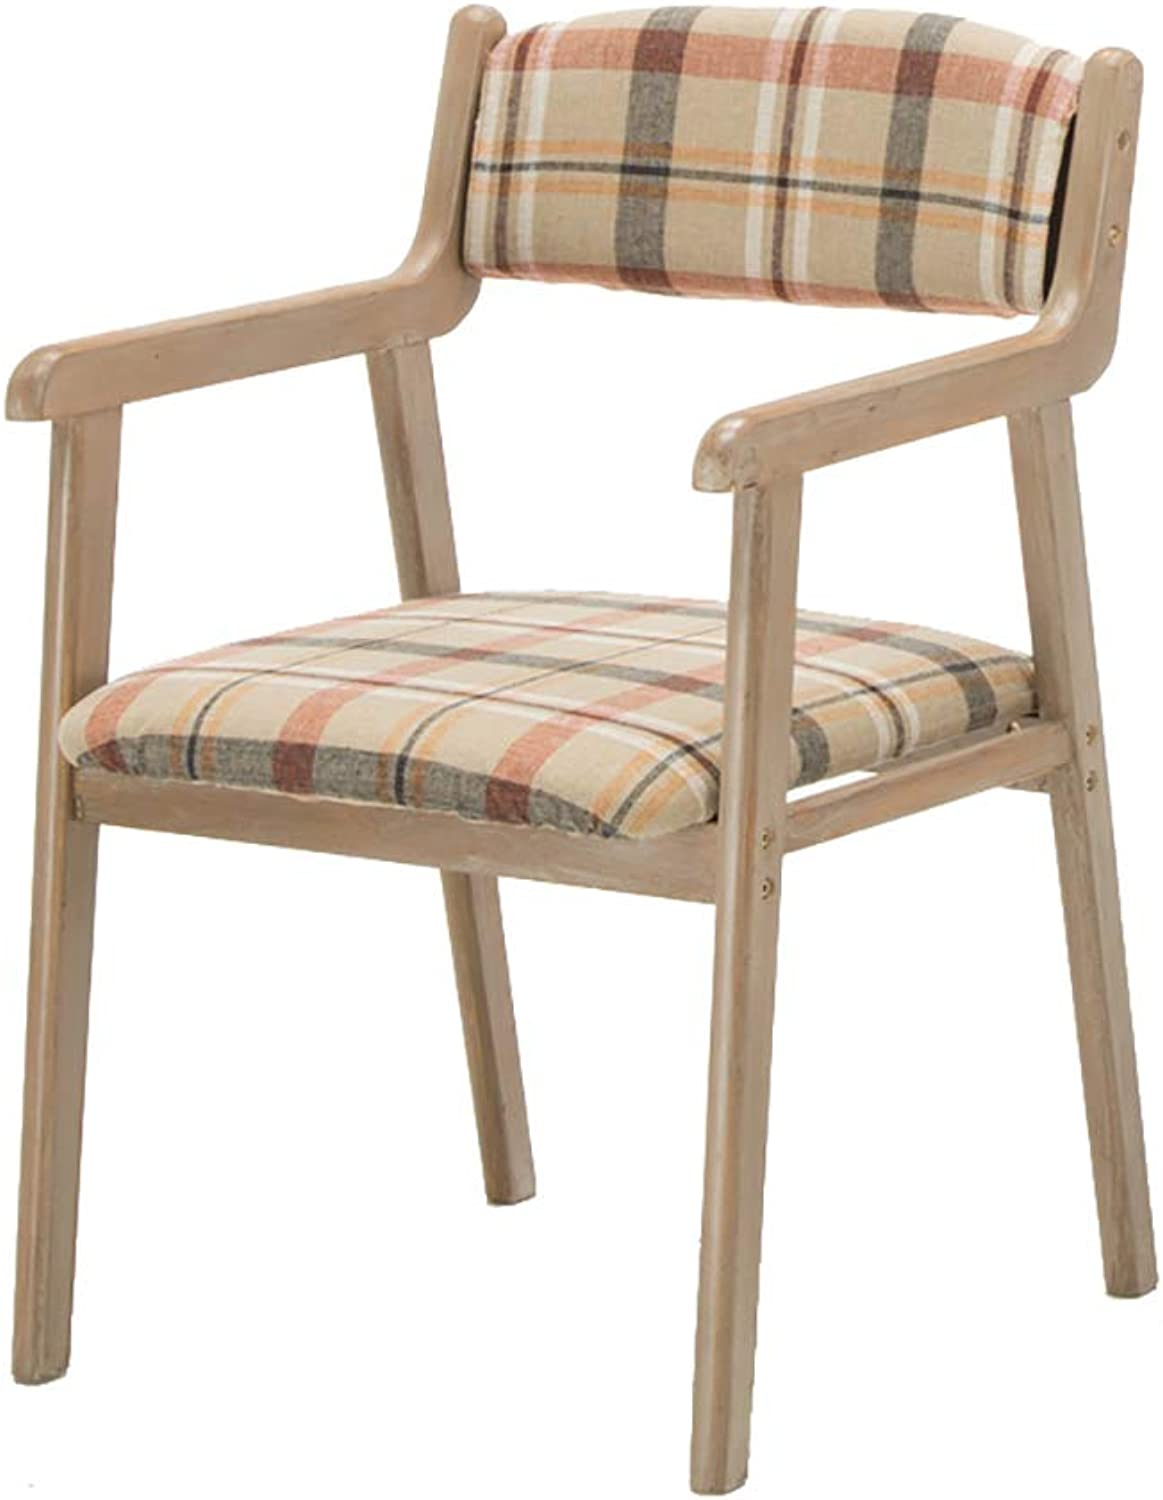 Nordic Style Dining Chair,Ergonomic Design Armchairs,Solid Wood Frame & High Resilience Sponge,for Kitchen Dining Living Family Room Bedroom Porch Patio Balcony Decor Furniture